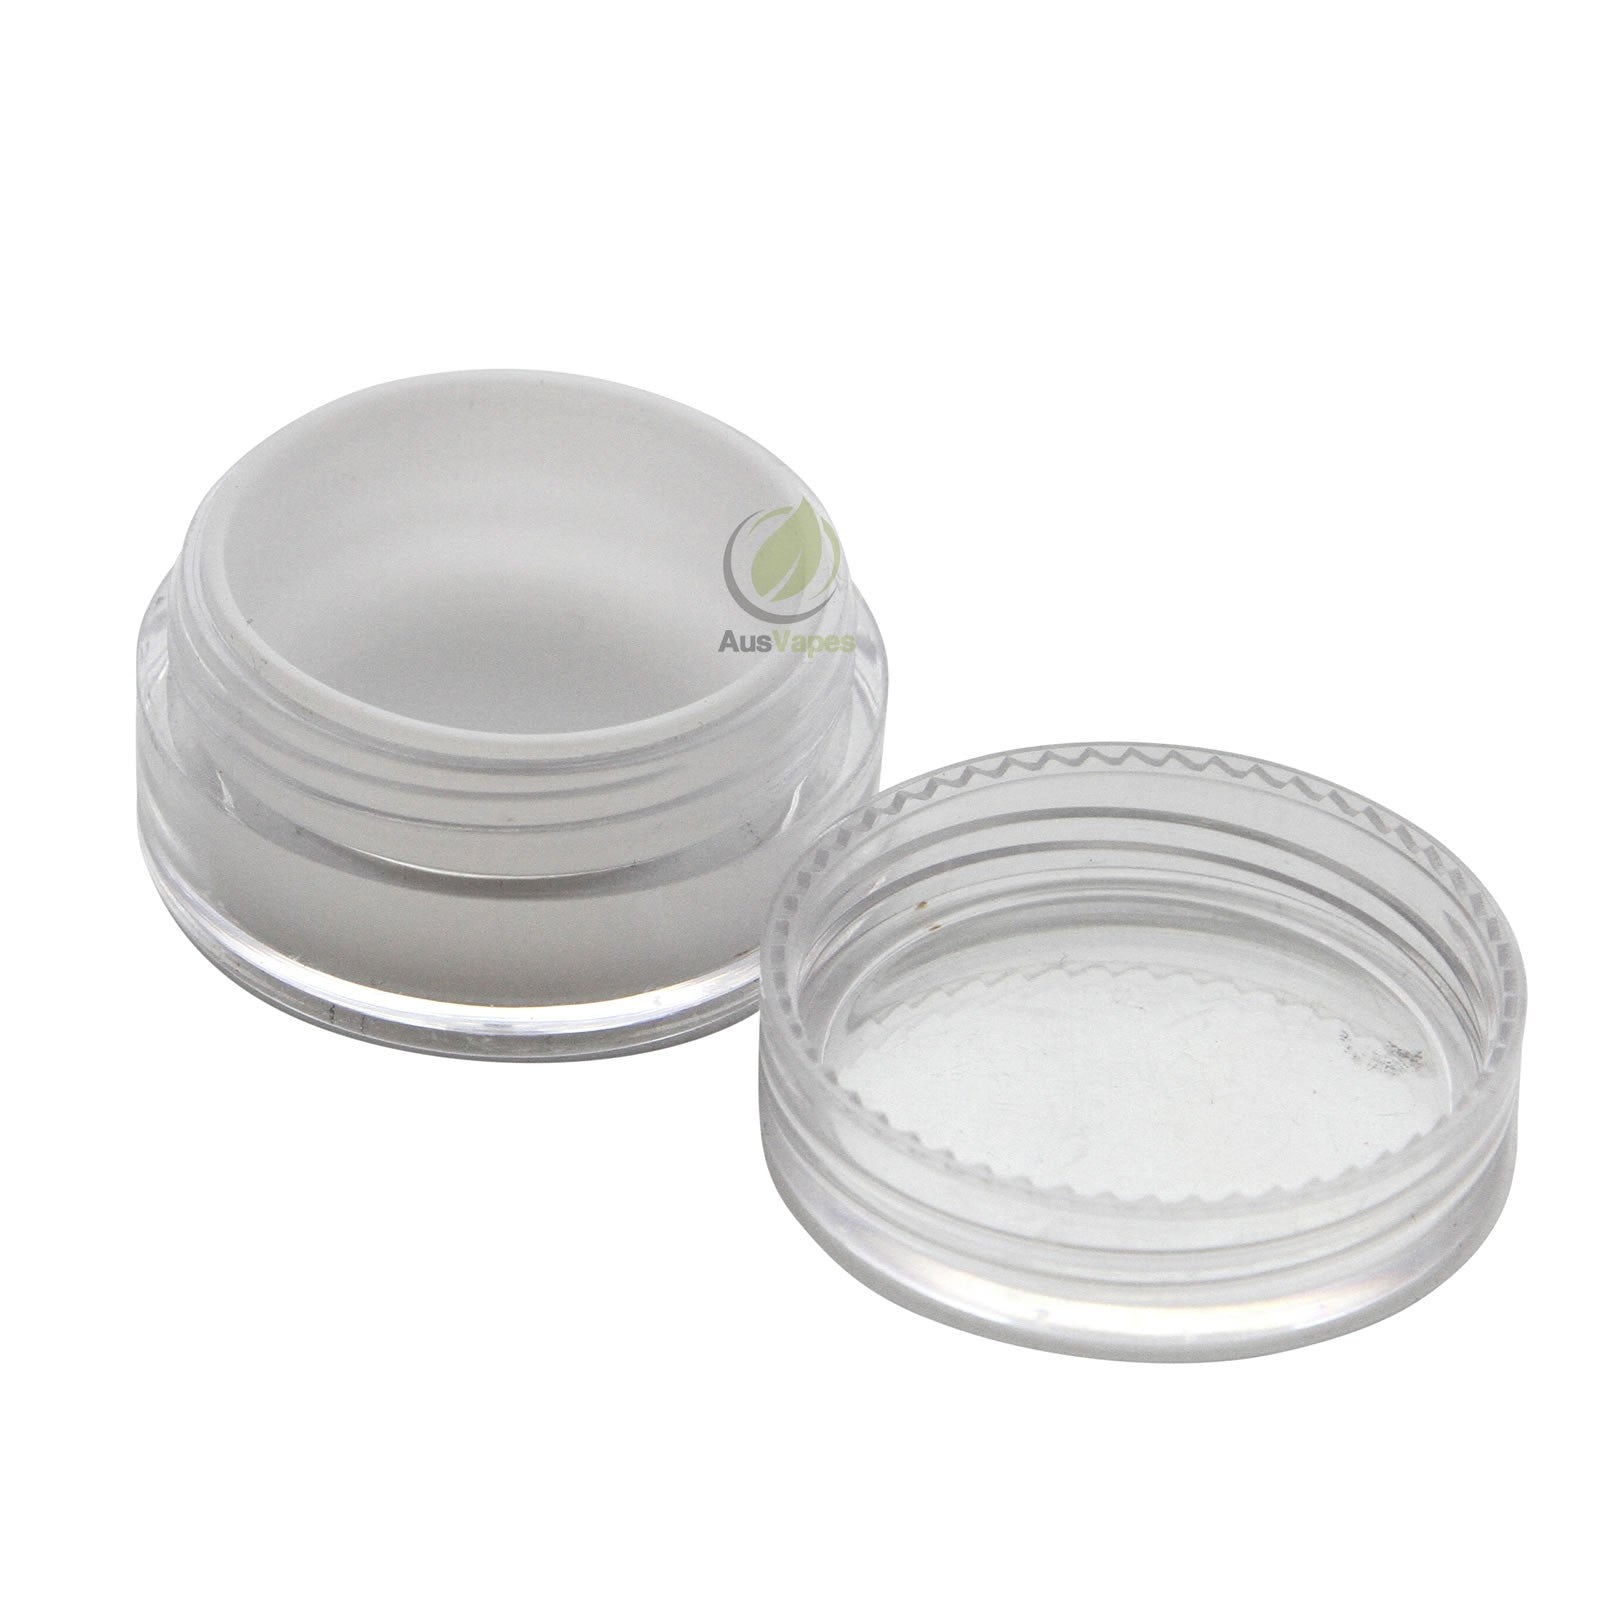 10ml Plastic Jar with Silicone Insert